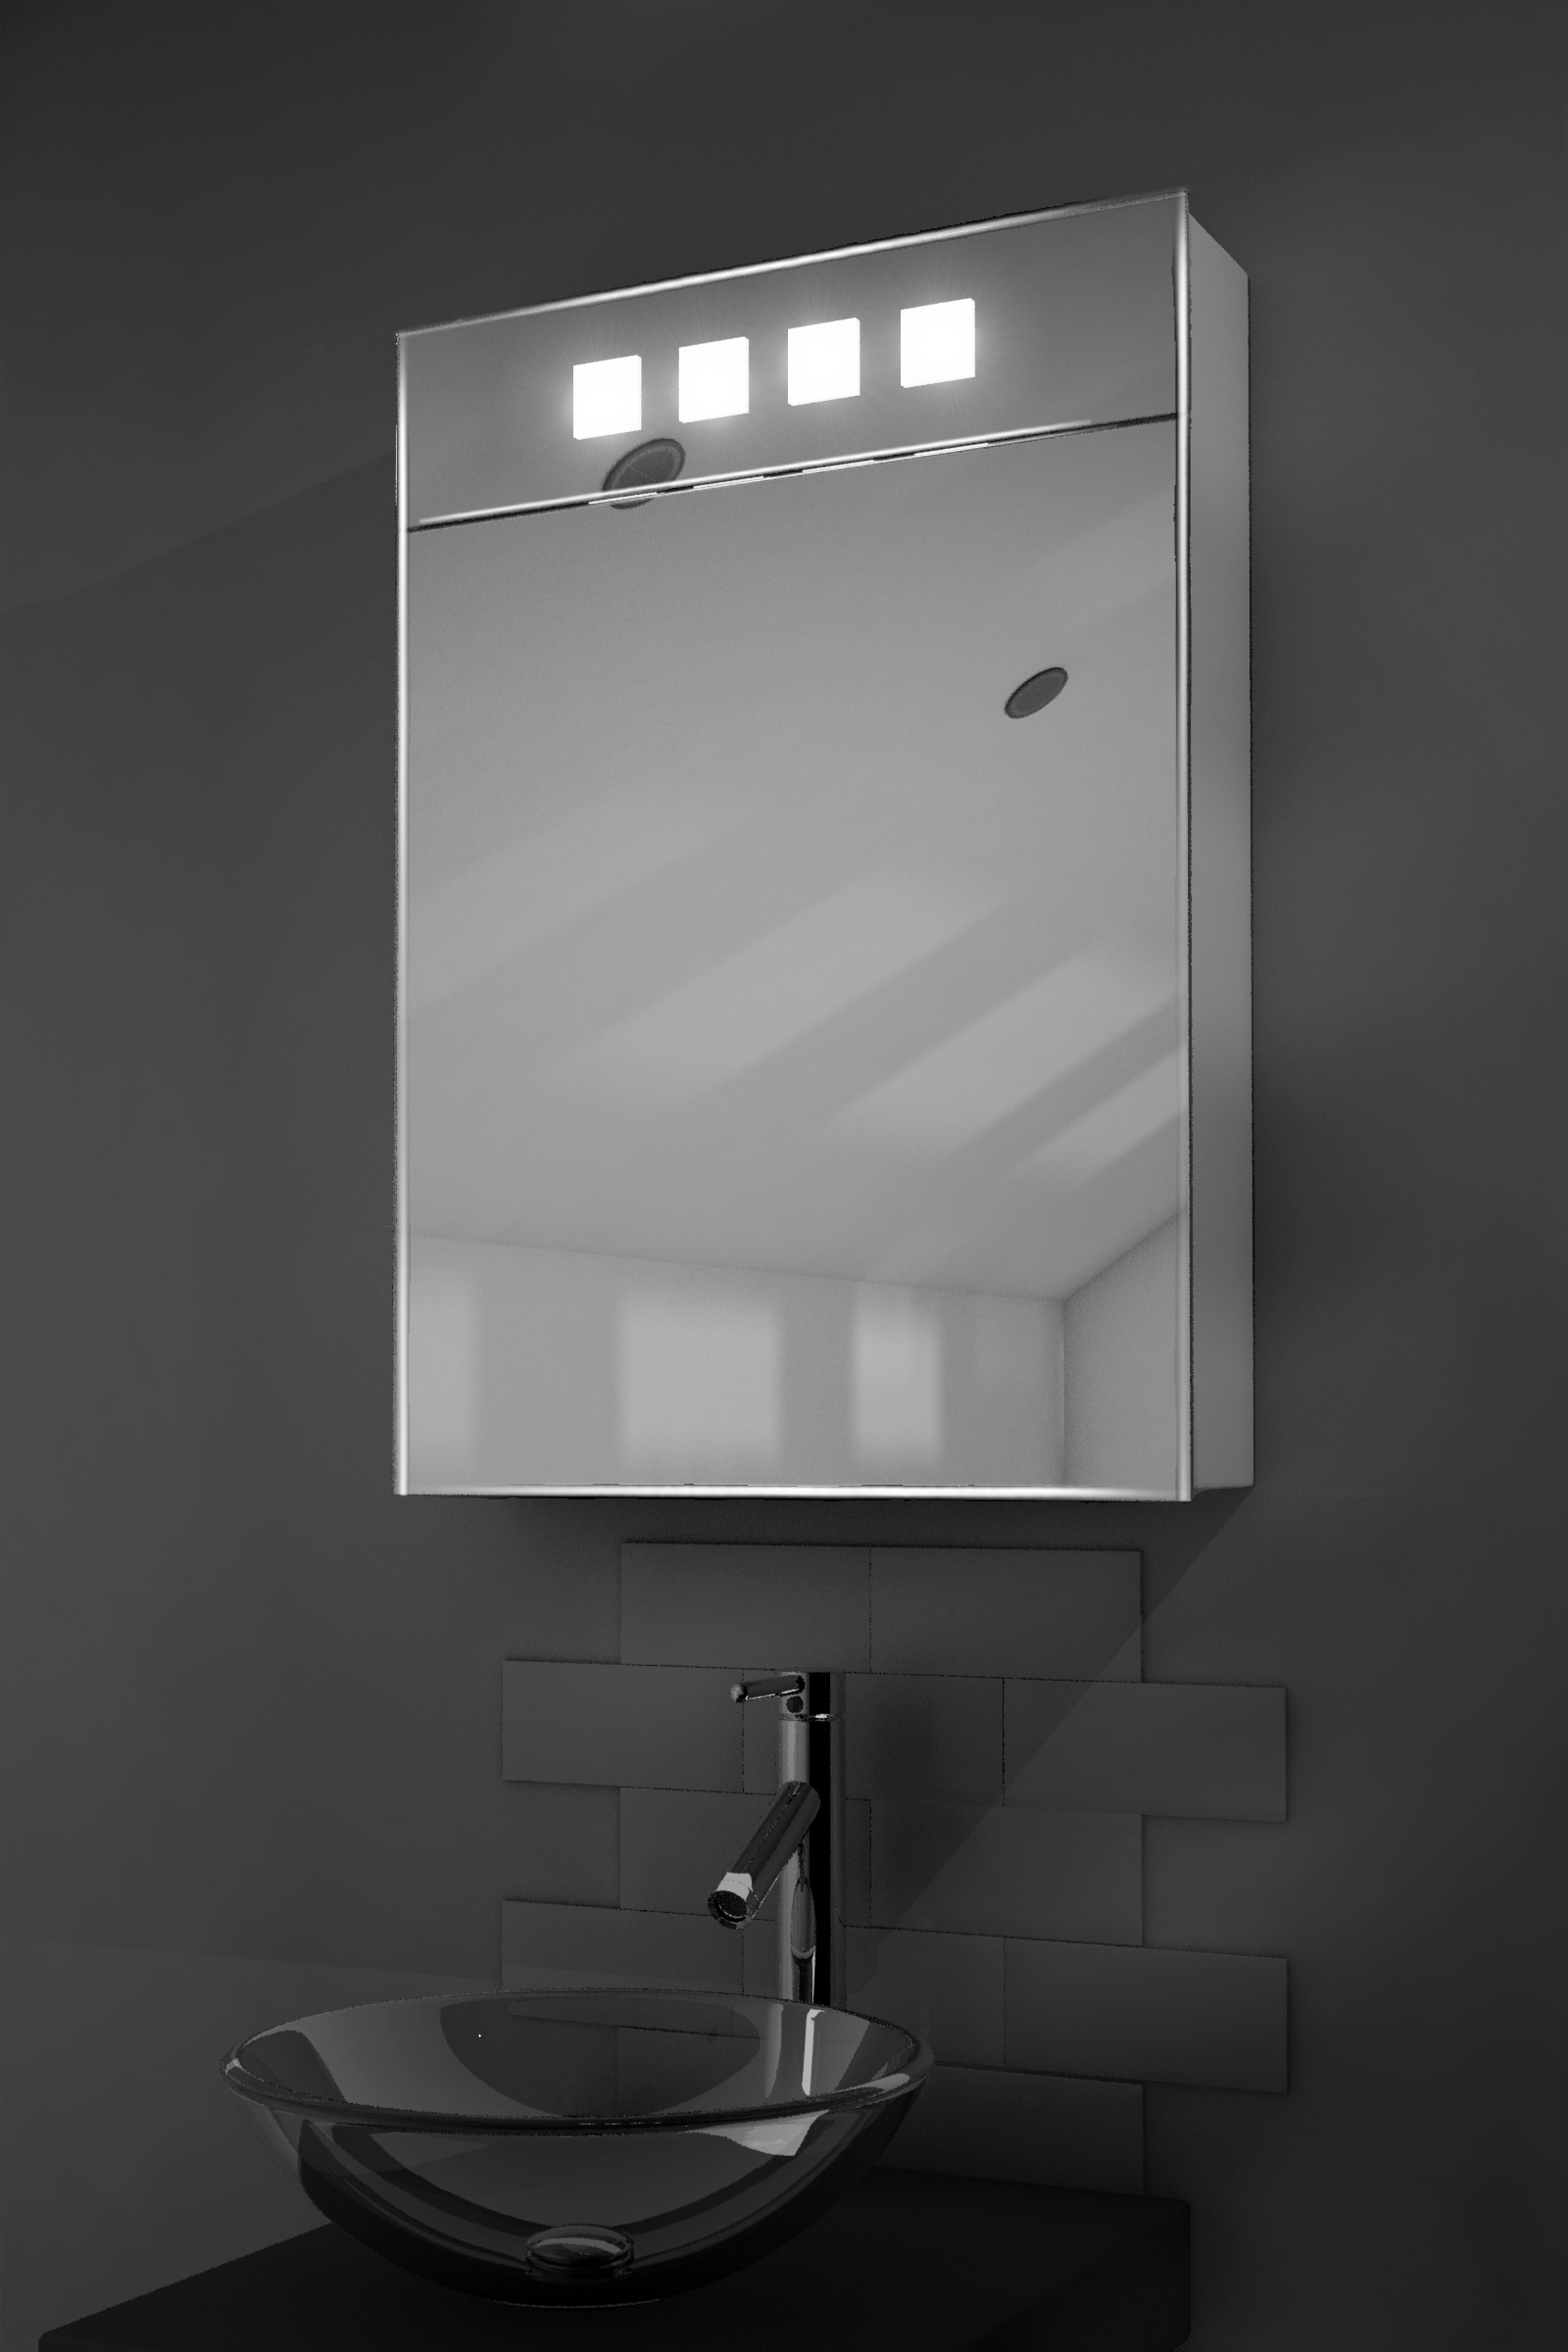 Bathroom mirror cabinets with light and shaver socket - Illuminated Bathroom Mirror Cabinet With Shaver Socket